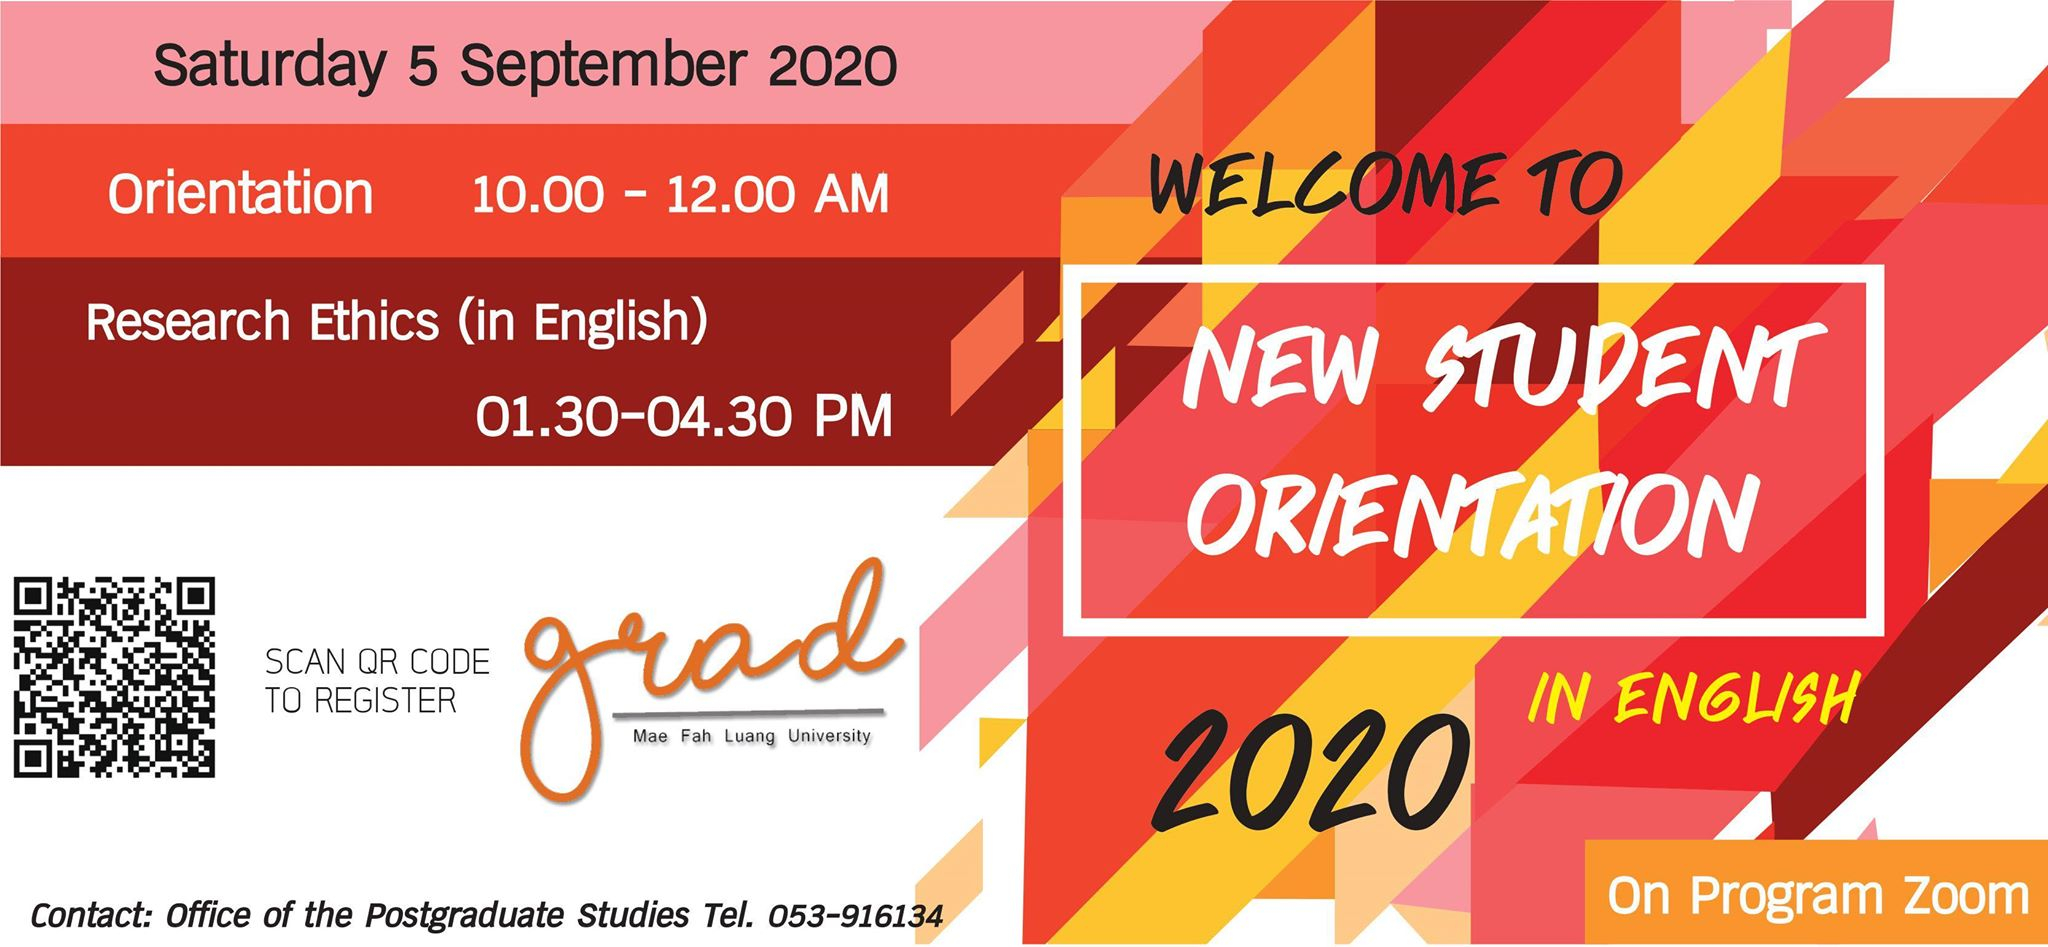 Welcome to New Student Orientation (In English) 2020